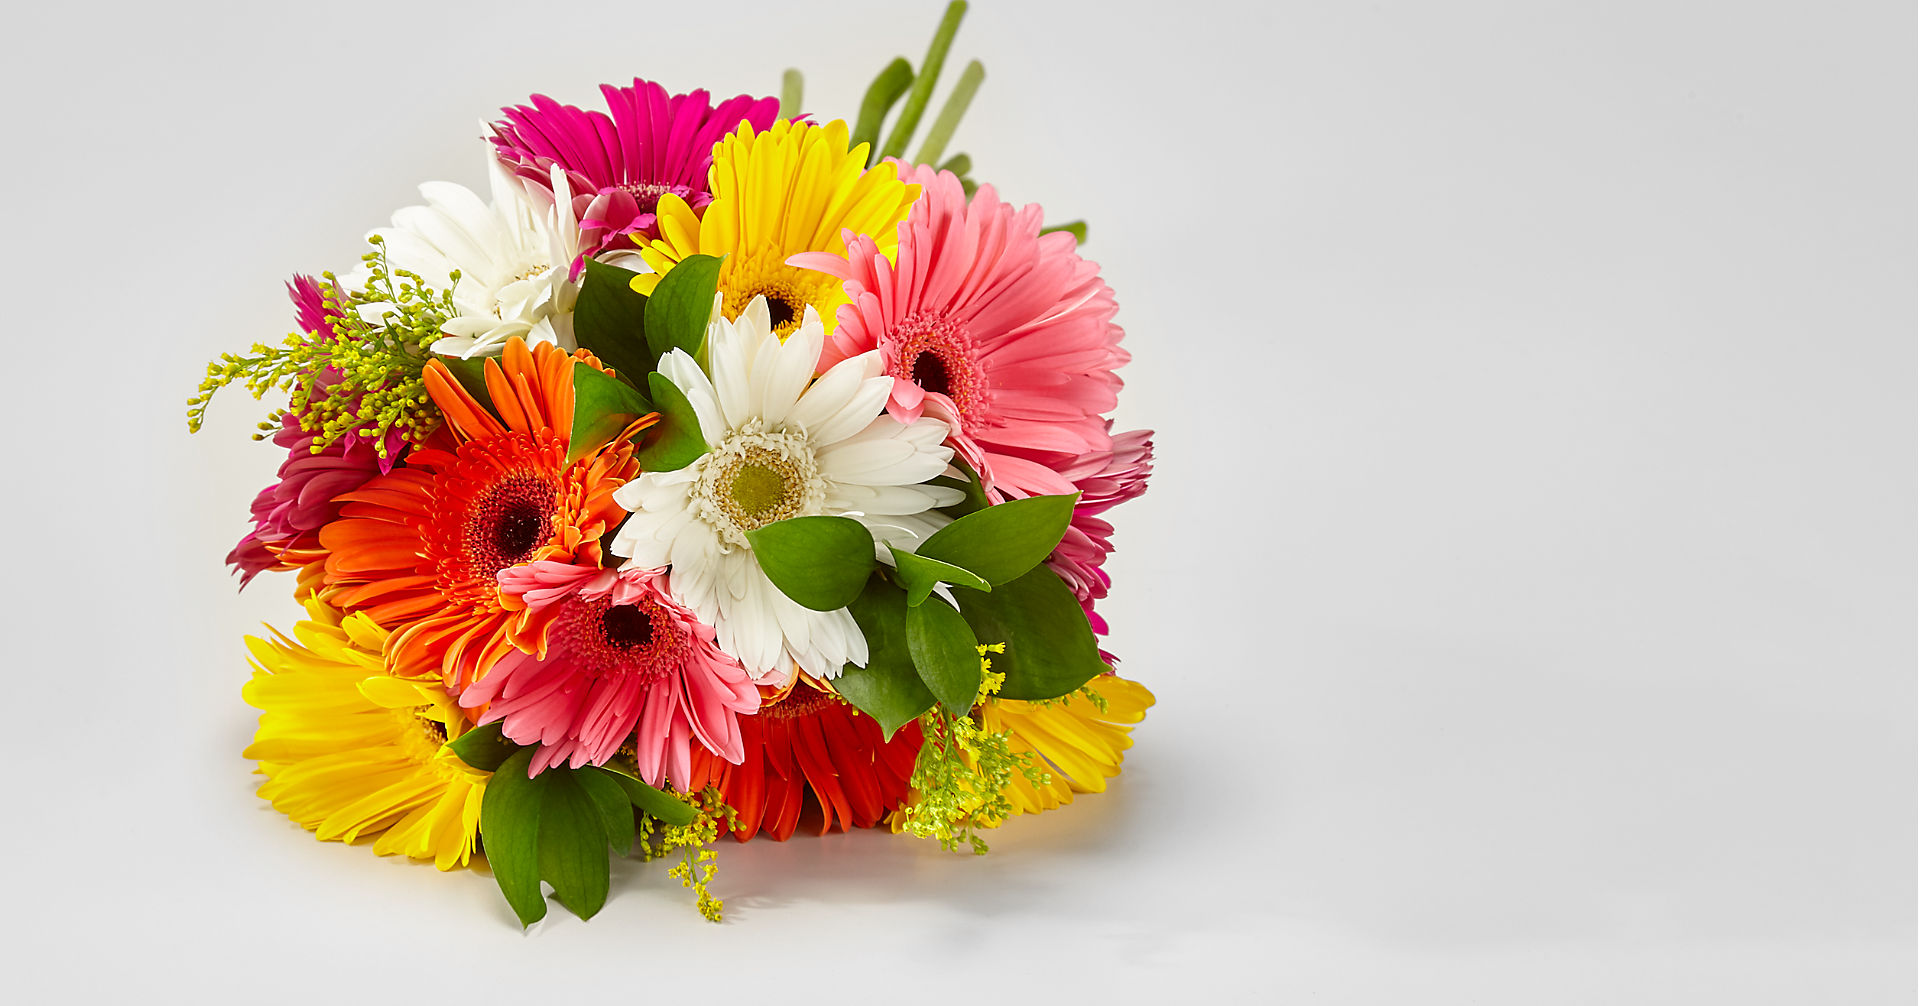 Colorful World Gerbera Daisy Bouquet - 15 Stems - VASE INCLUDED - Image 2 Of 4